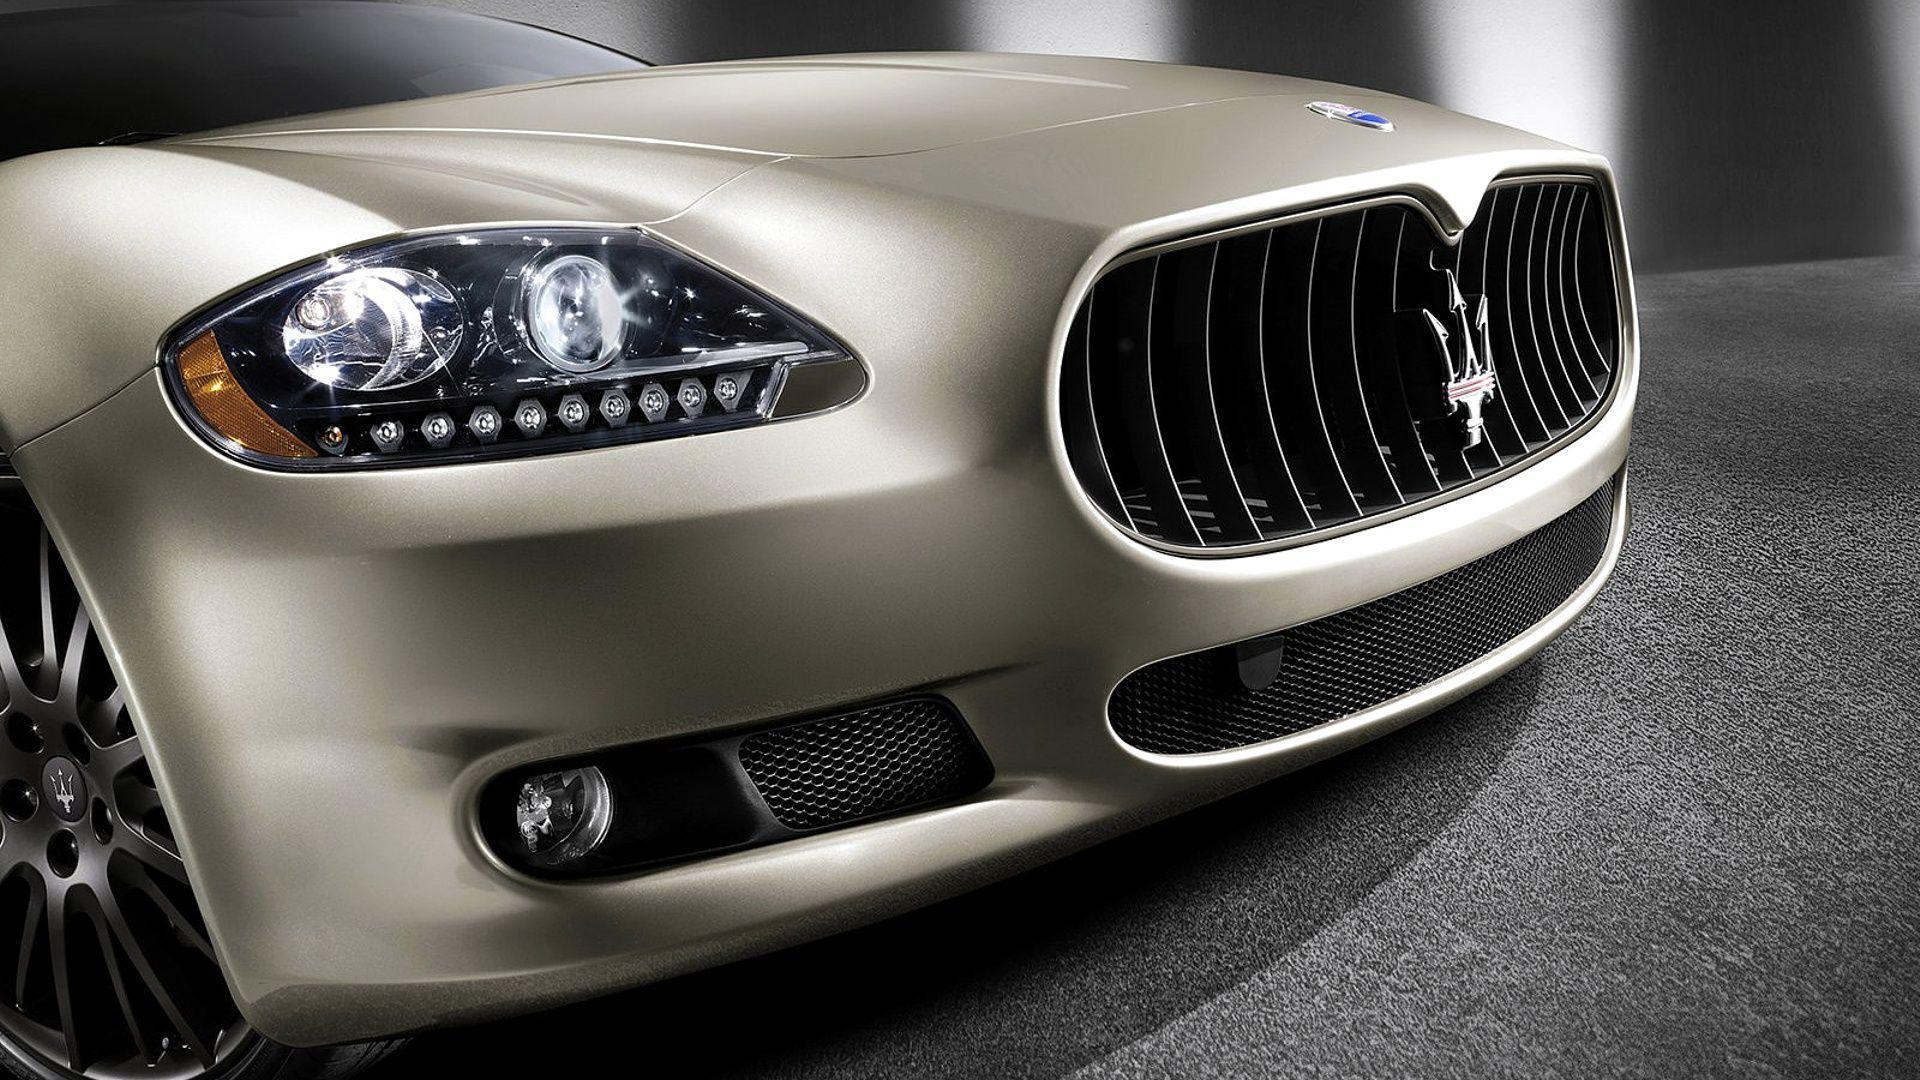 Maserati quattroporte on wallpapers in hd quality for your desktop ...